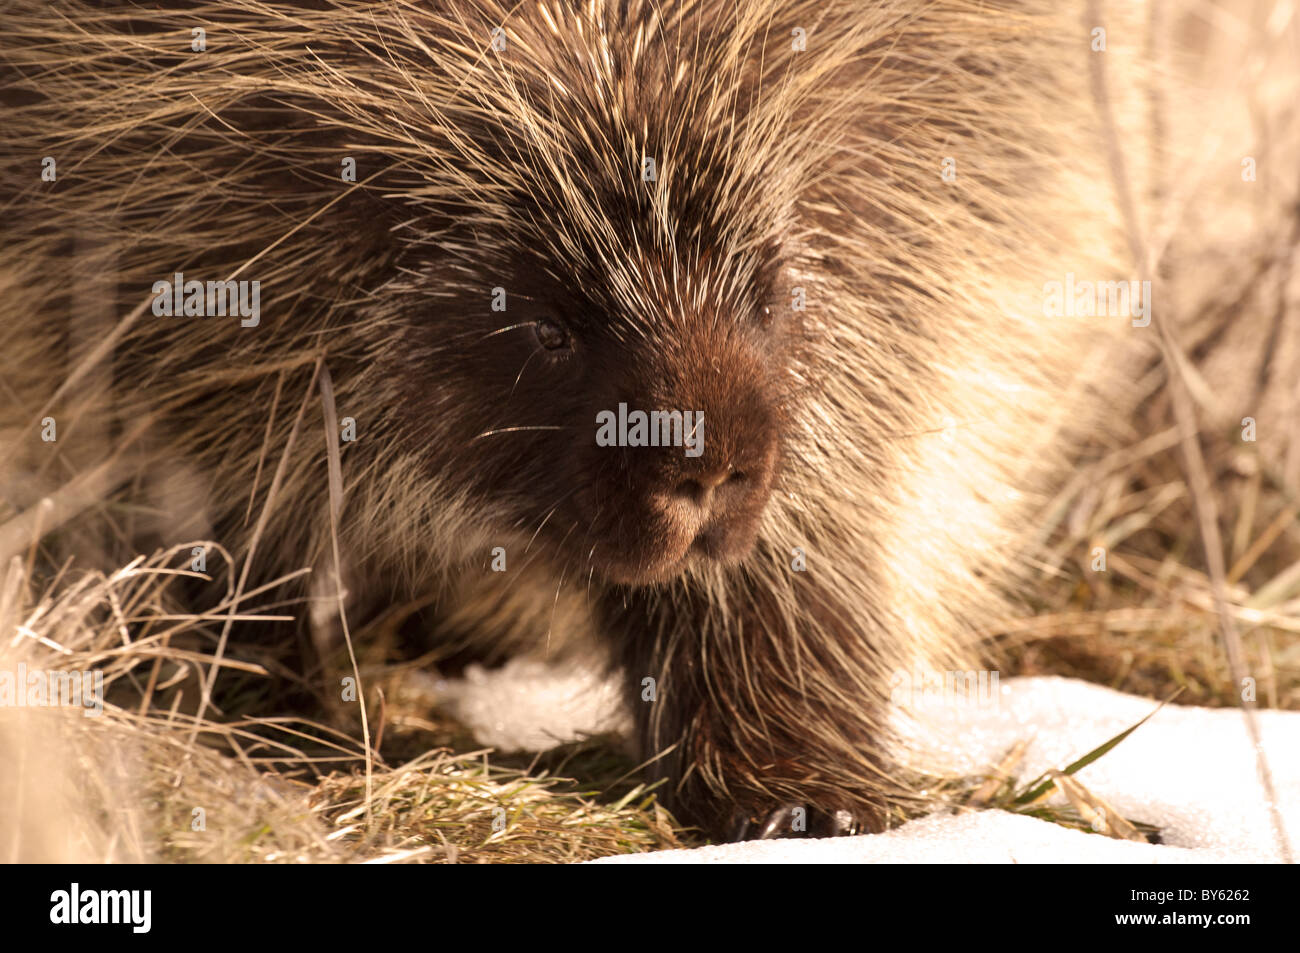 Stock photo of a North American porcupine walking across the grass in the winter. Stock Photo